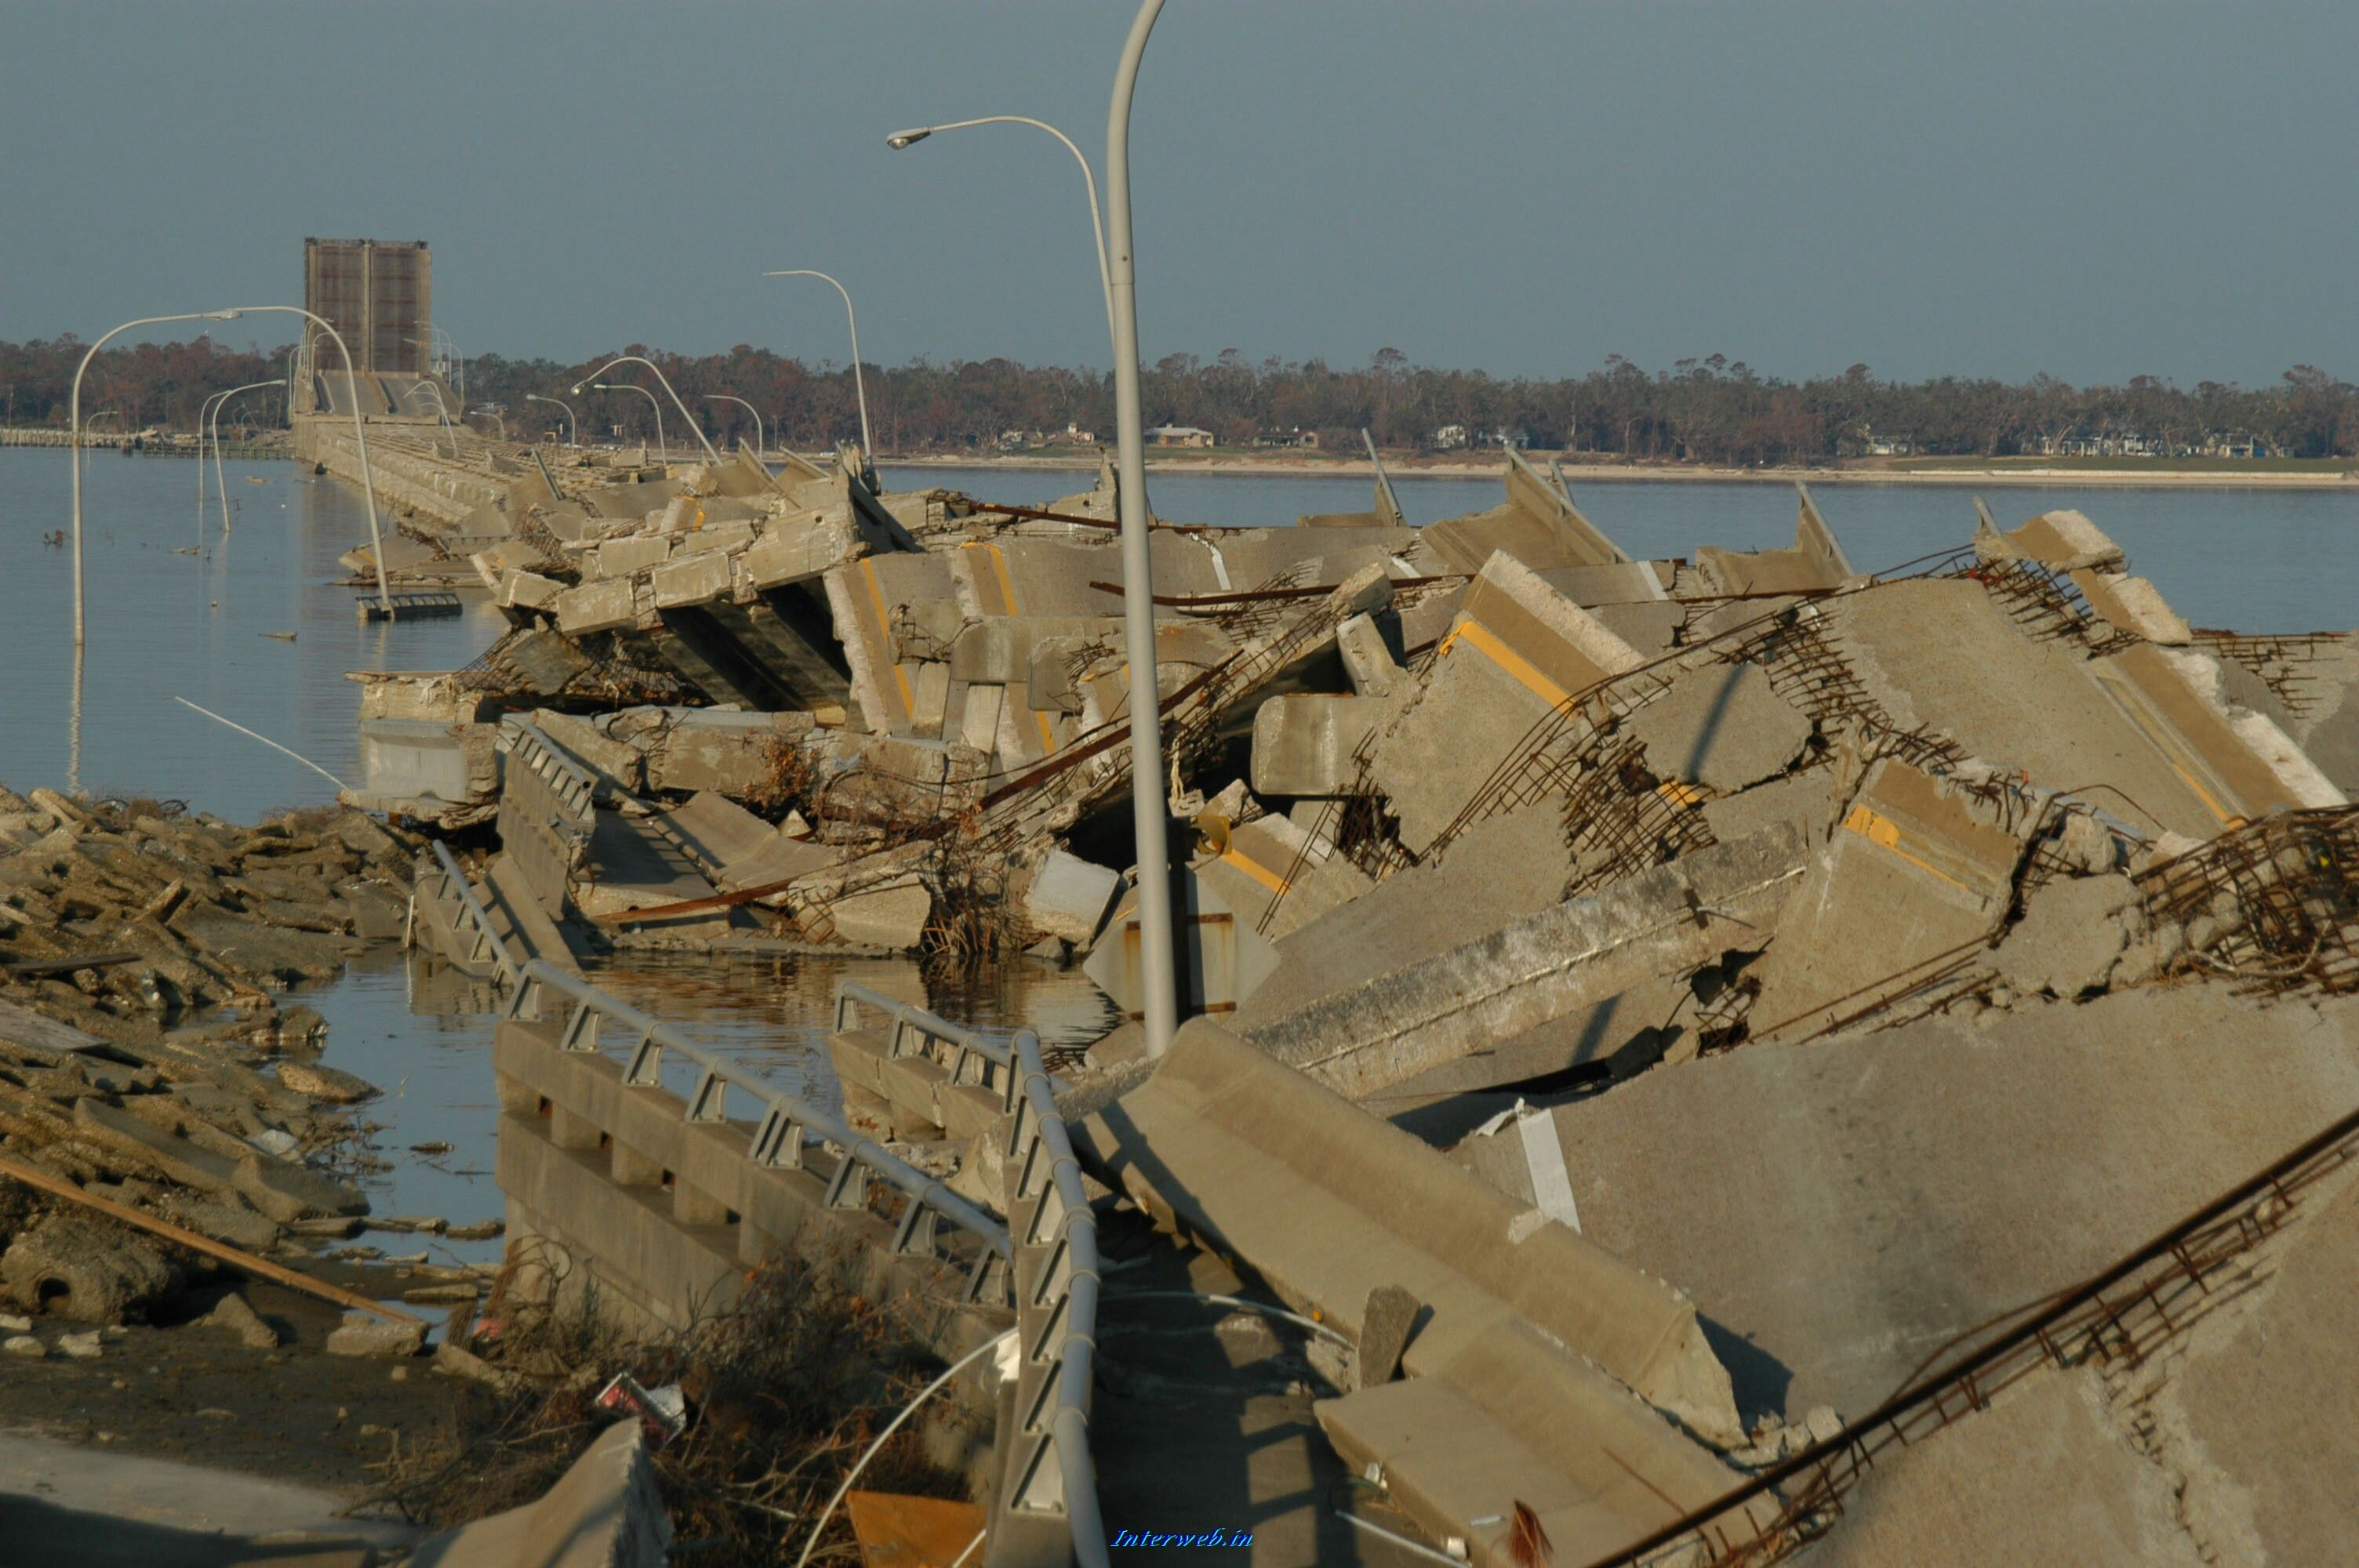 Looking For Information On This Photo I Think This Was Biloxi Ms After Hurricane Katrina Biloxi Hurricane Katrina Aftermath Mississippi